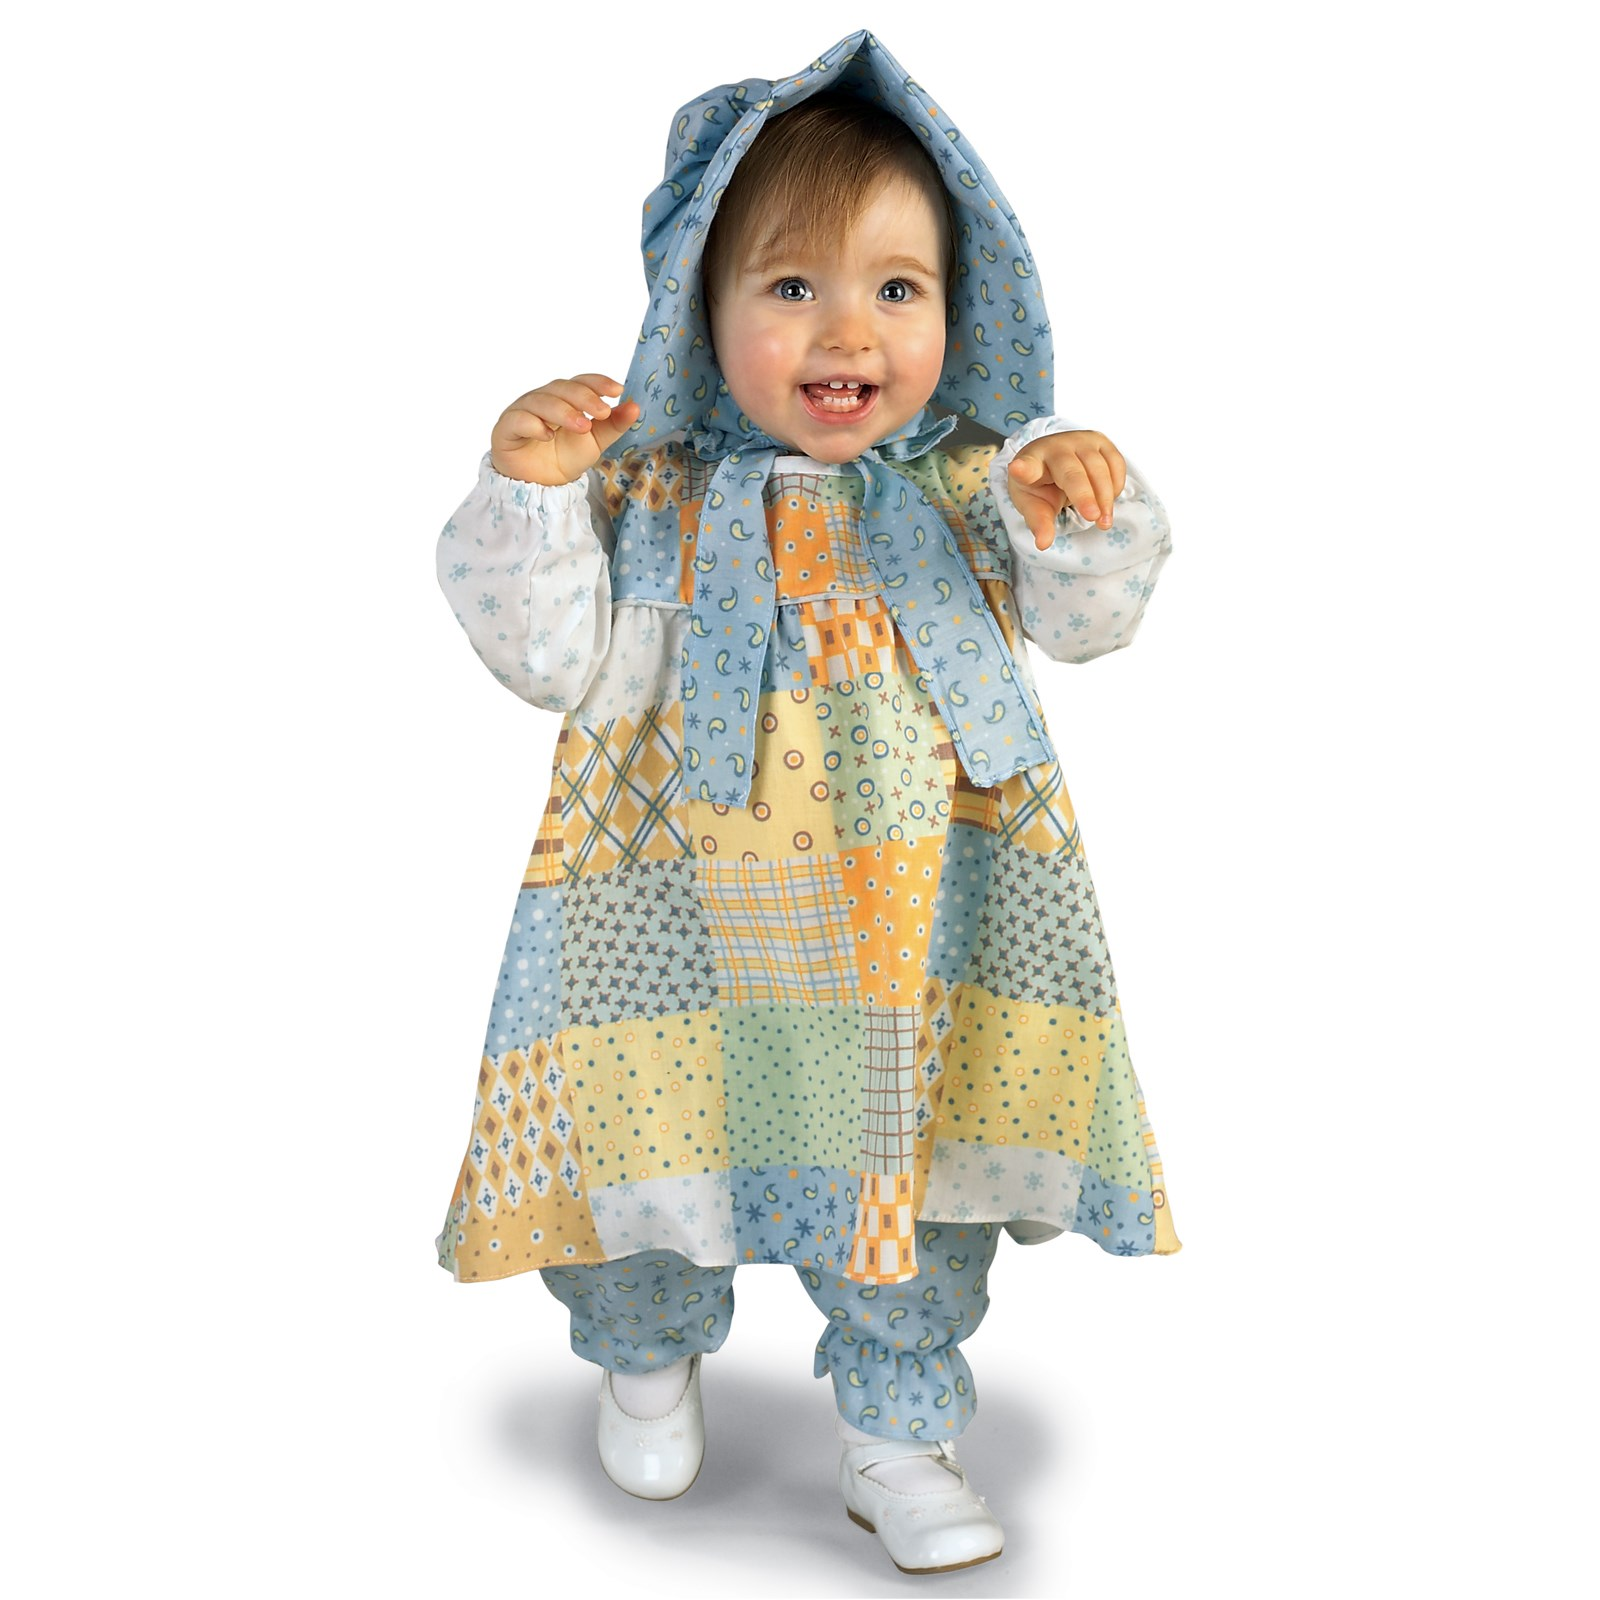 Halloween decorations ideas yard - Holly Hobby Dress Infant Toddler Costume Buycostumes Com